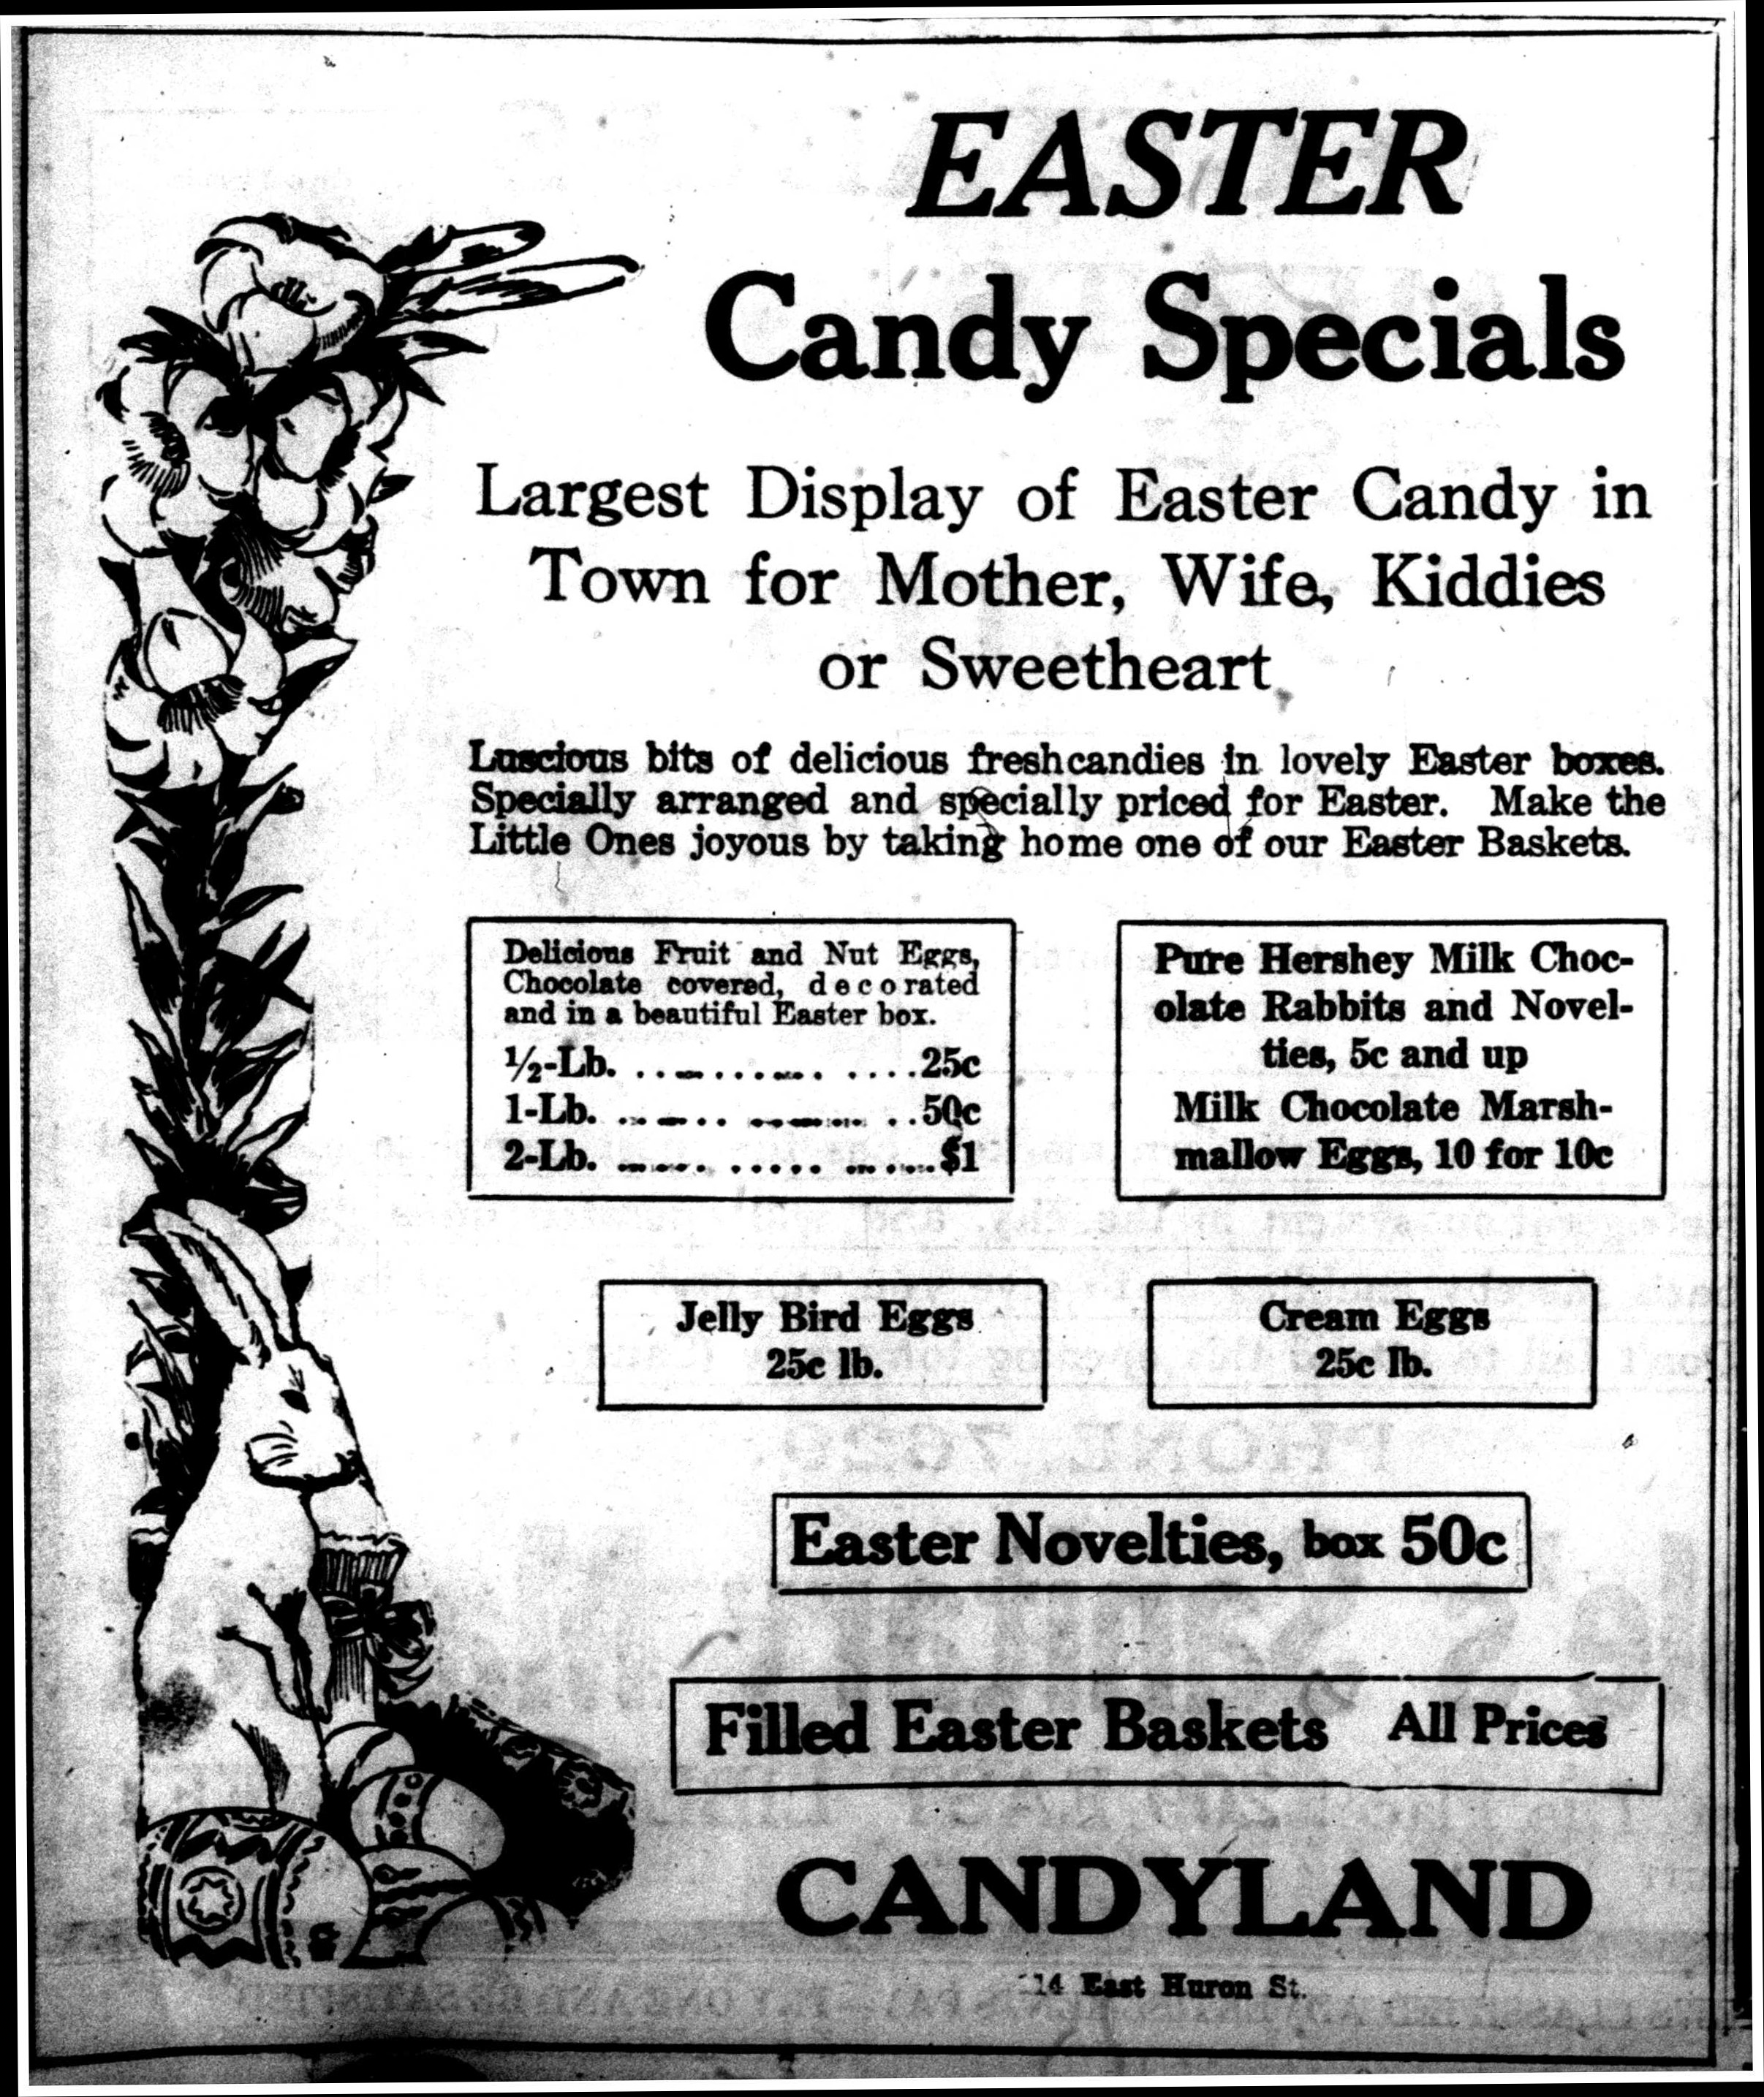 Easter Candy Specials image